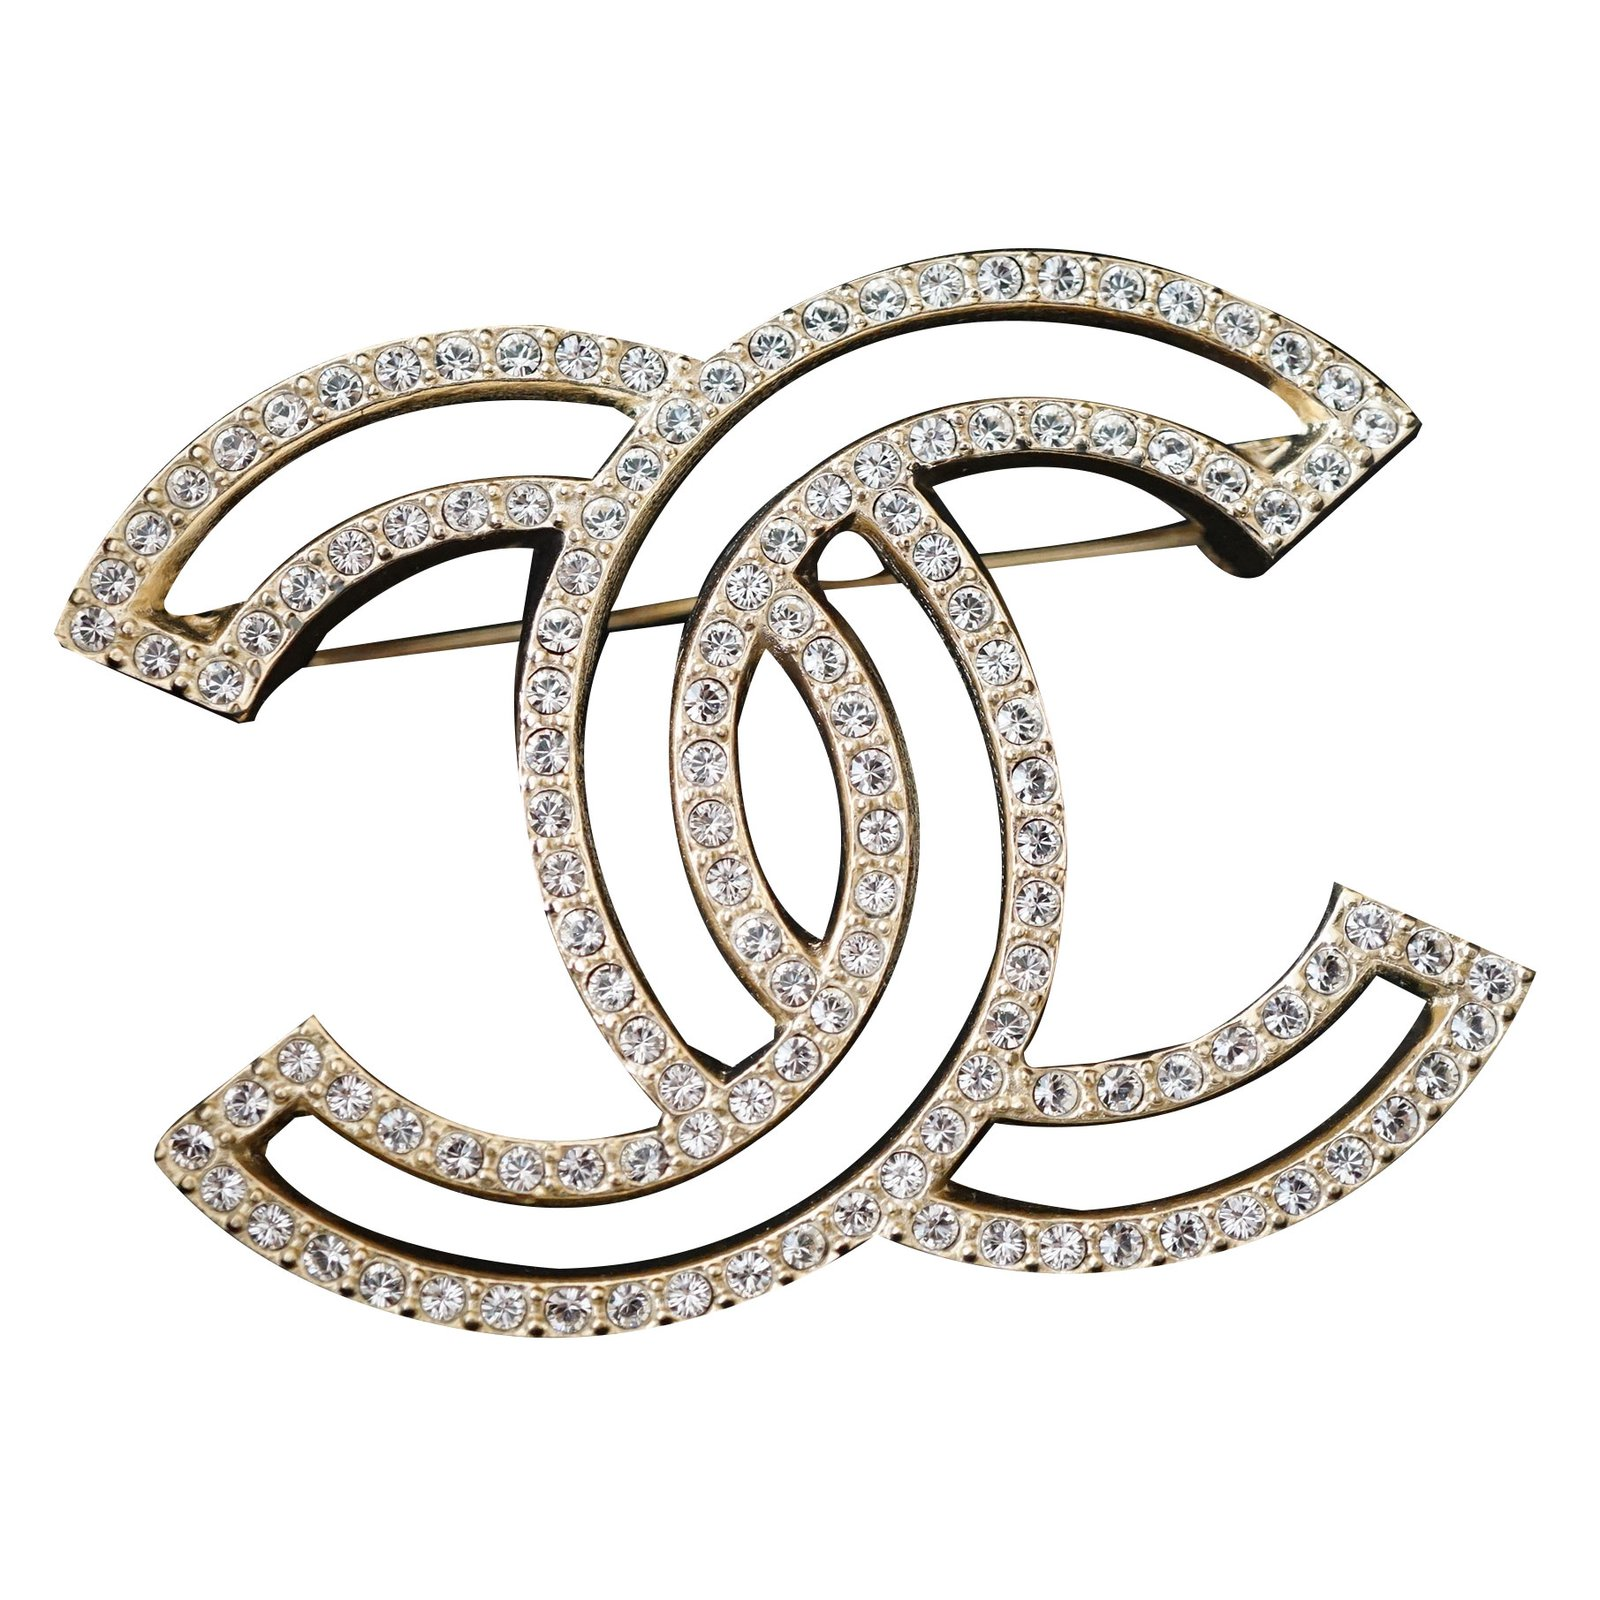 a ideas brooch channel to fustany small wear en chanel the fashion accessories